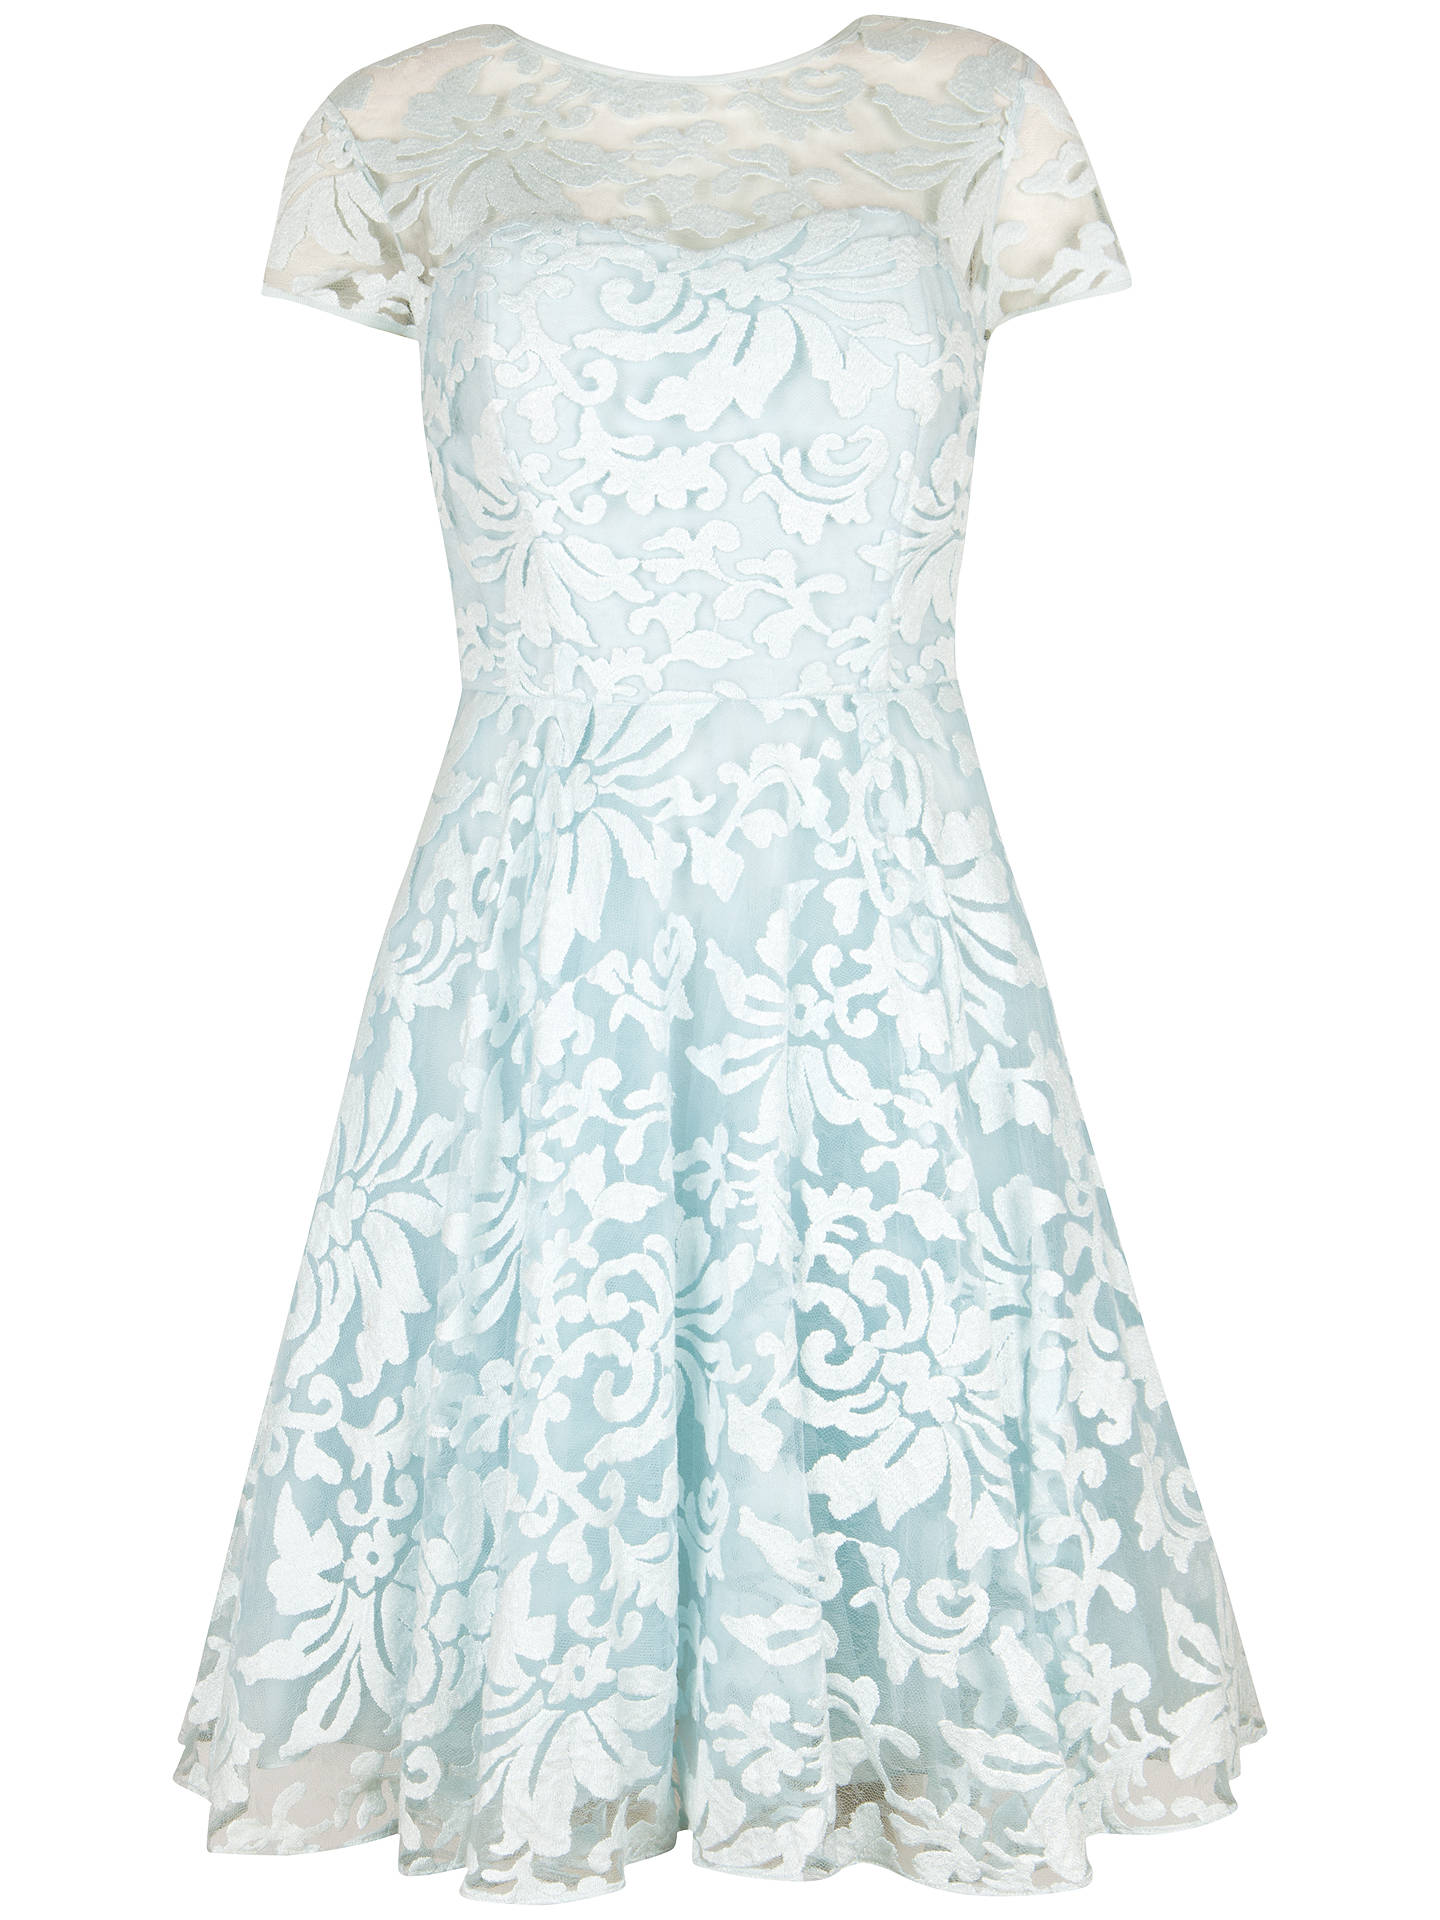 fc27753c0b0087 Ted Baker Caree Floral Lace Dress at John Lewis   Partners